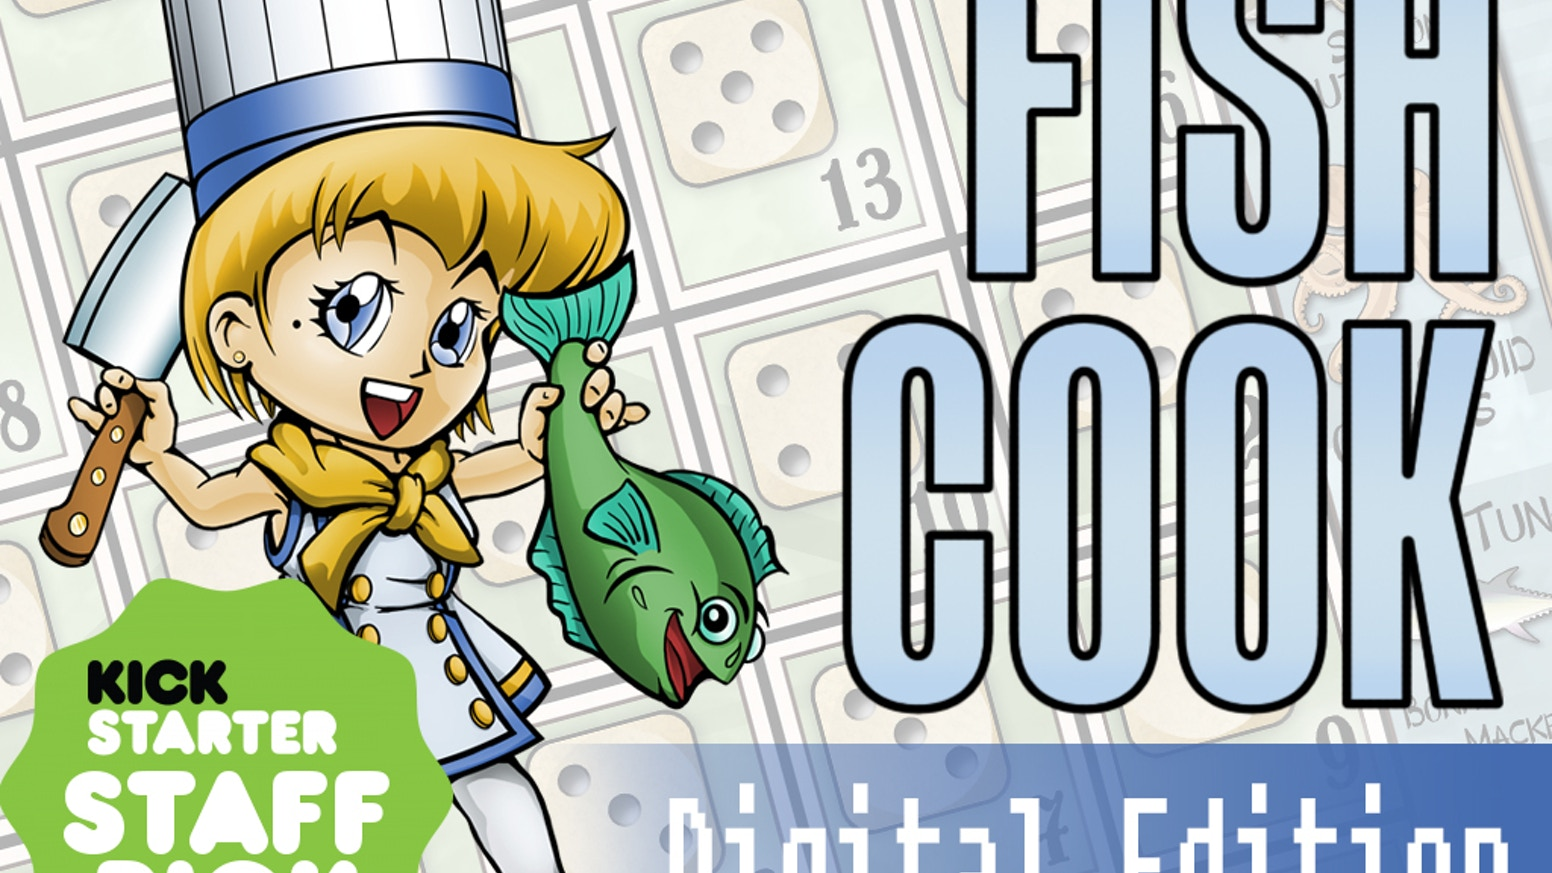 Fish Cook: Digital Edition by Cat Duo » We are submitting the app to